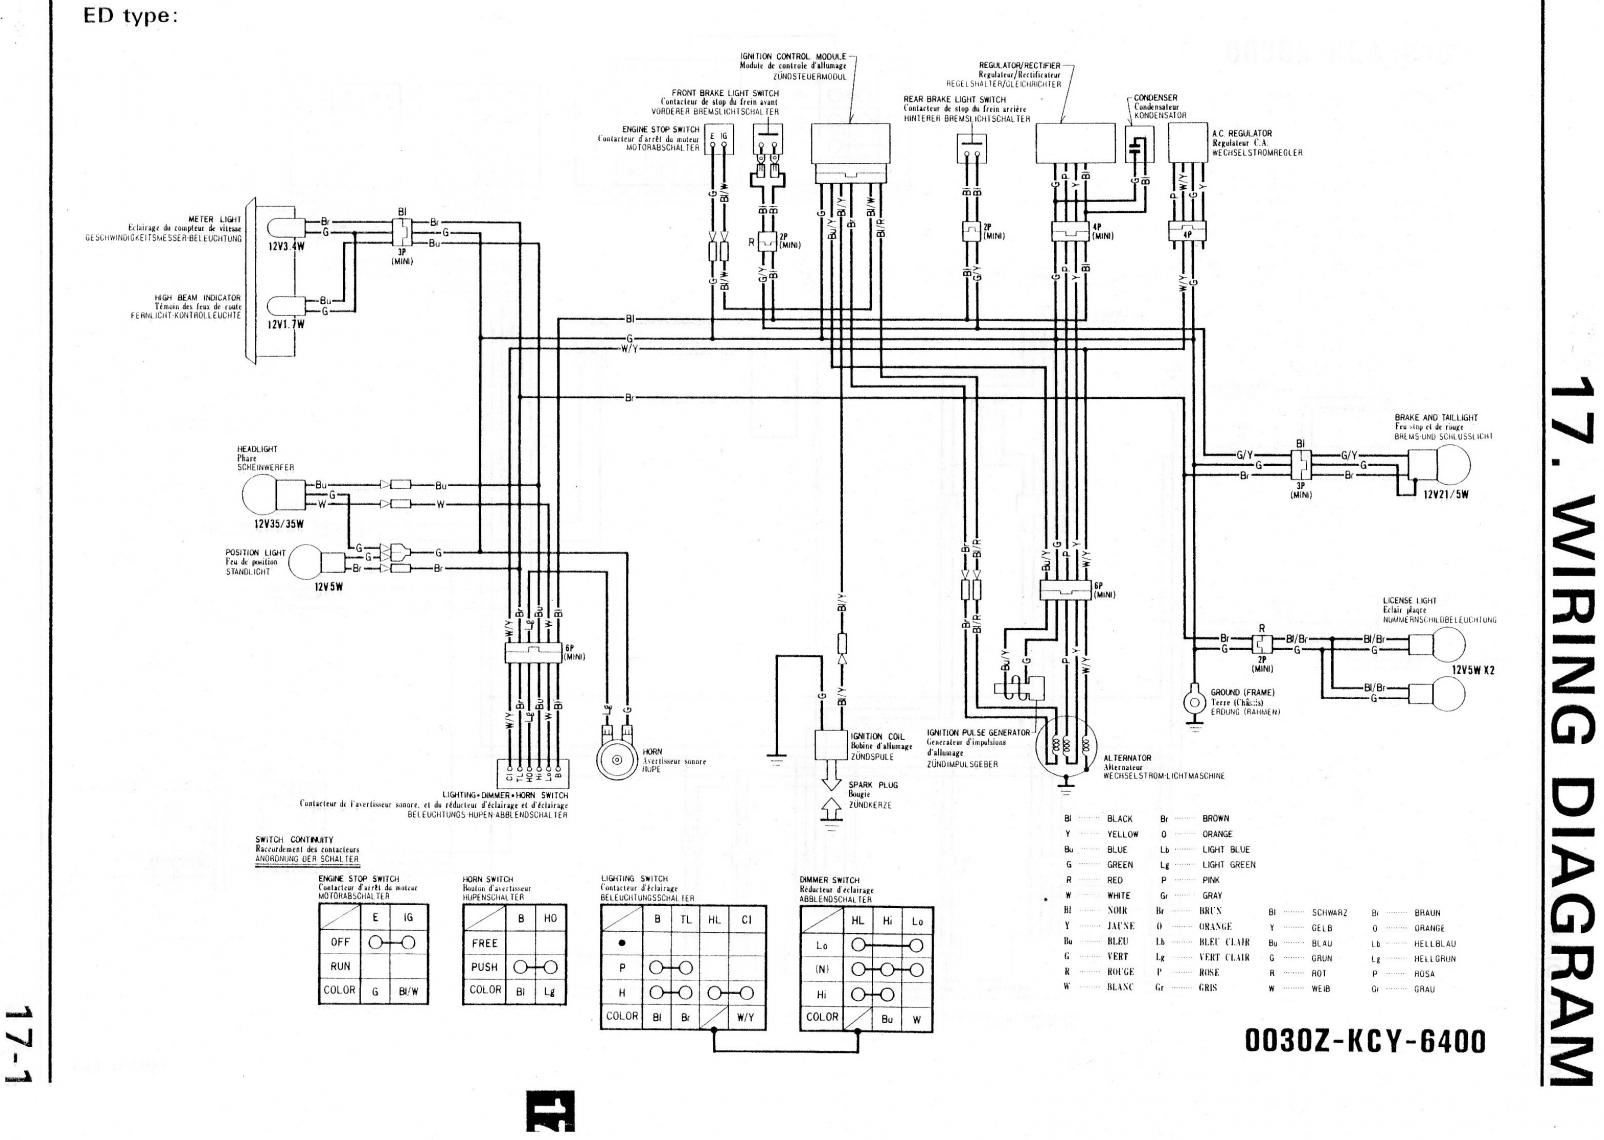 mitsubishi 3000gt radio wiring diagram 1995 mitsubishi 3000gt engine diagram wiring schematic ... 1995 mitsubishi 3000gt headlight wiring diagram